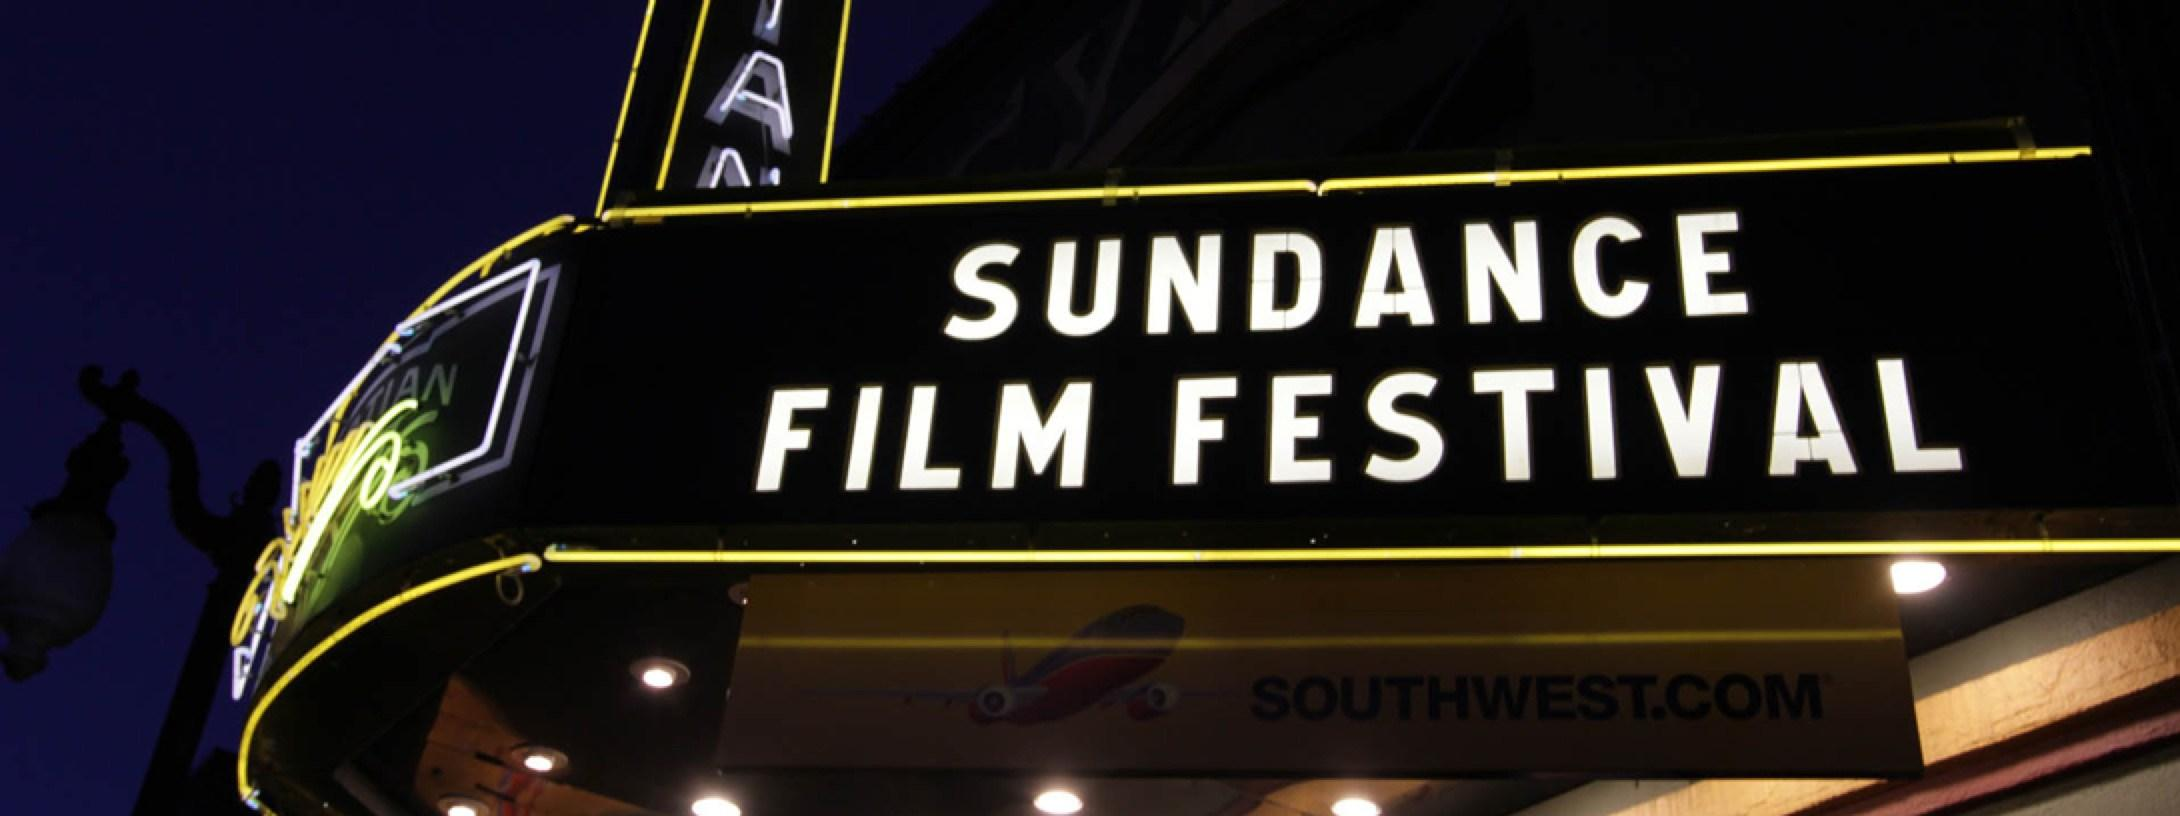 The Sundance Film Festival takes place in Park City, Utah each January. In 2017, buyers invested in many new and exciting movies including Casting JonBenet and Joshua: Teenager vs. Superpower.